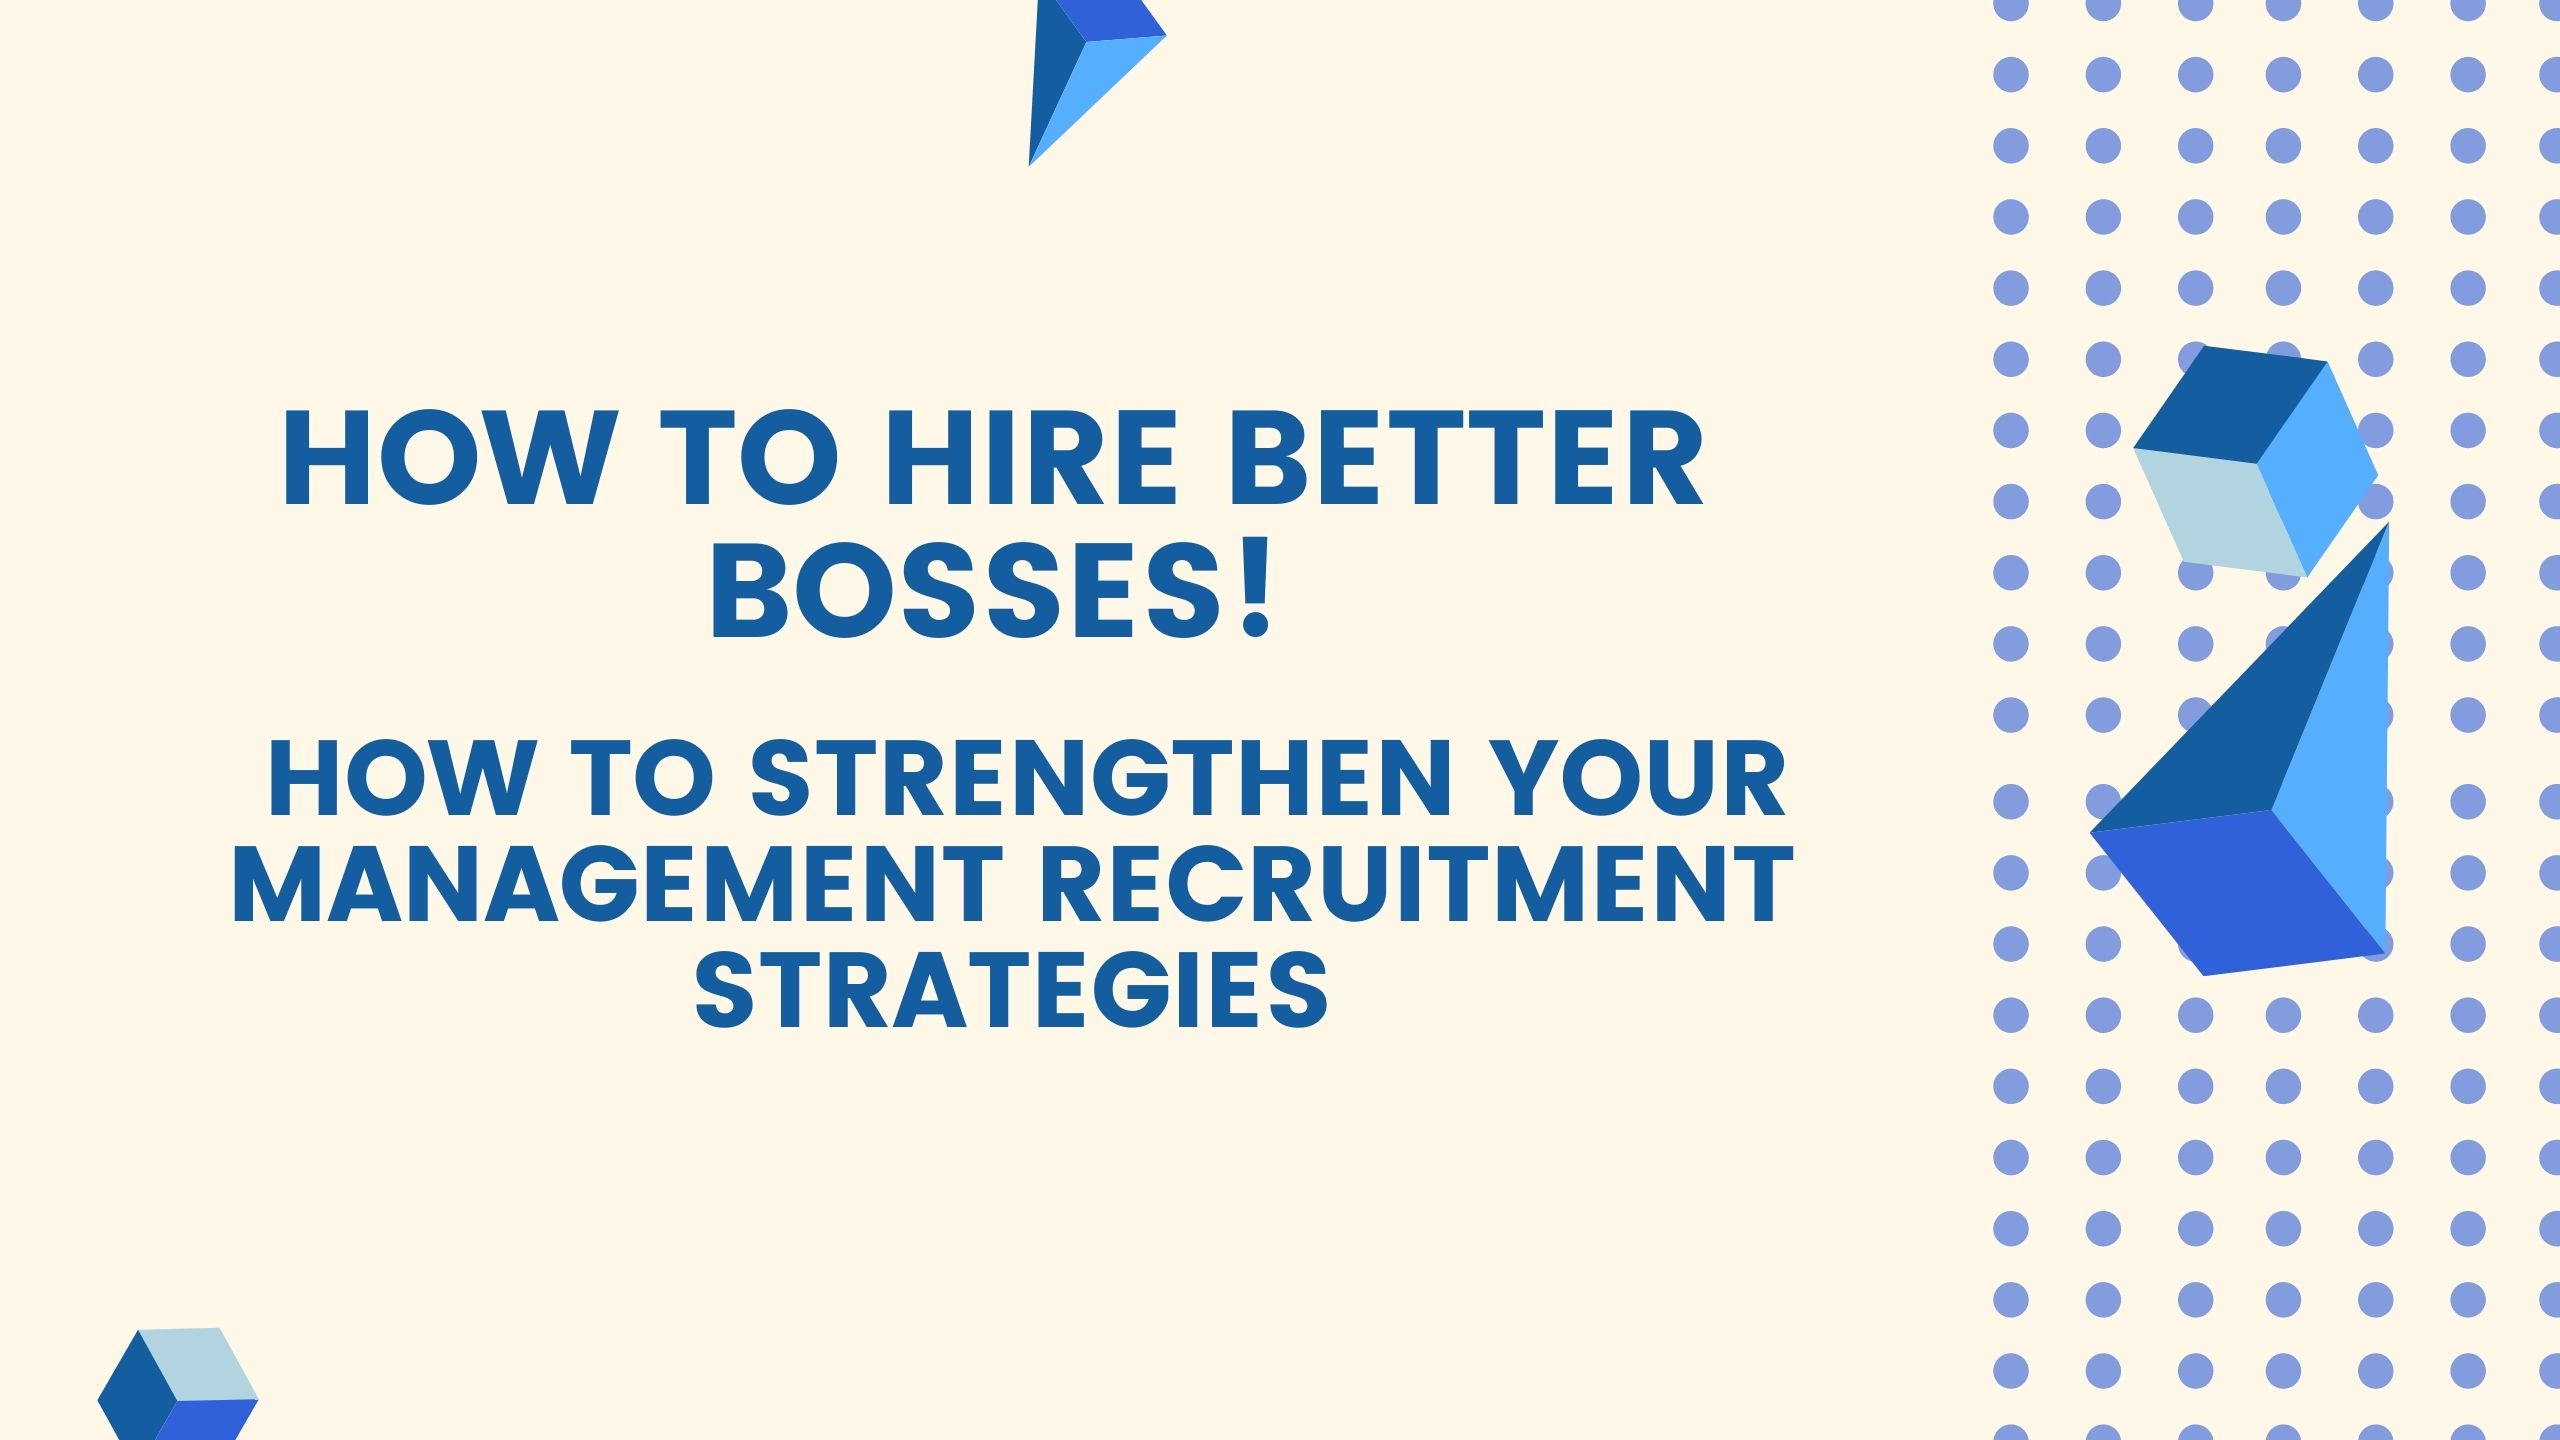 How to Hire Better Bosses